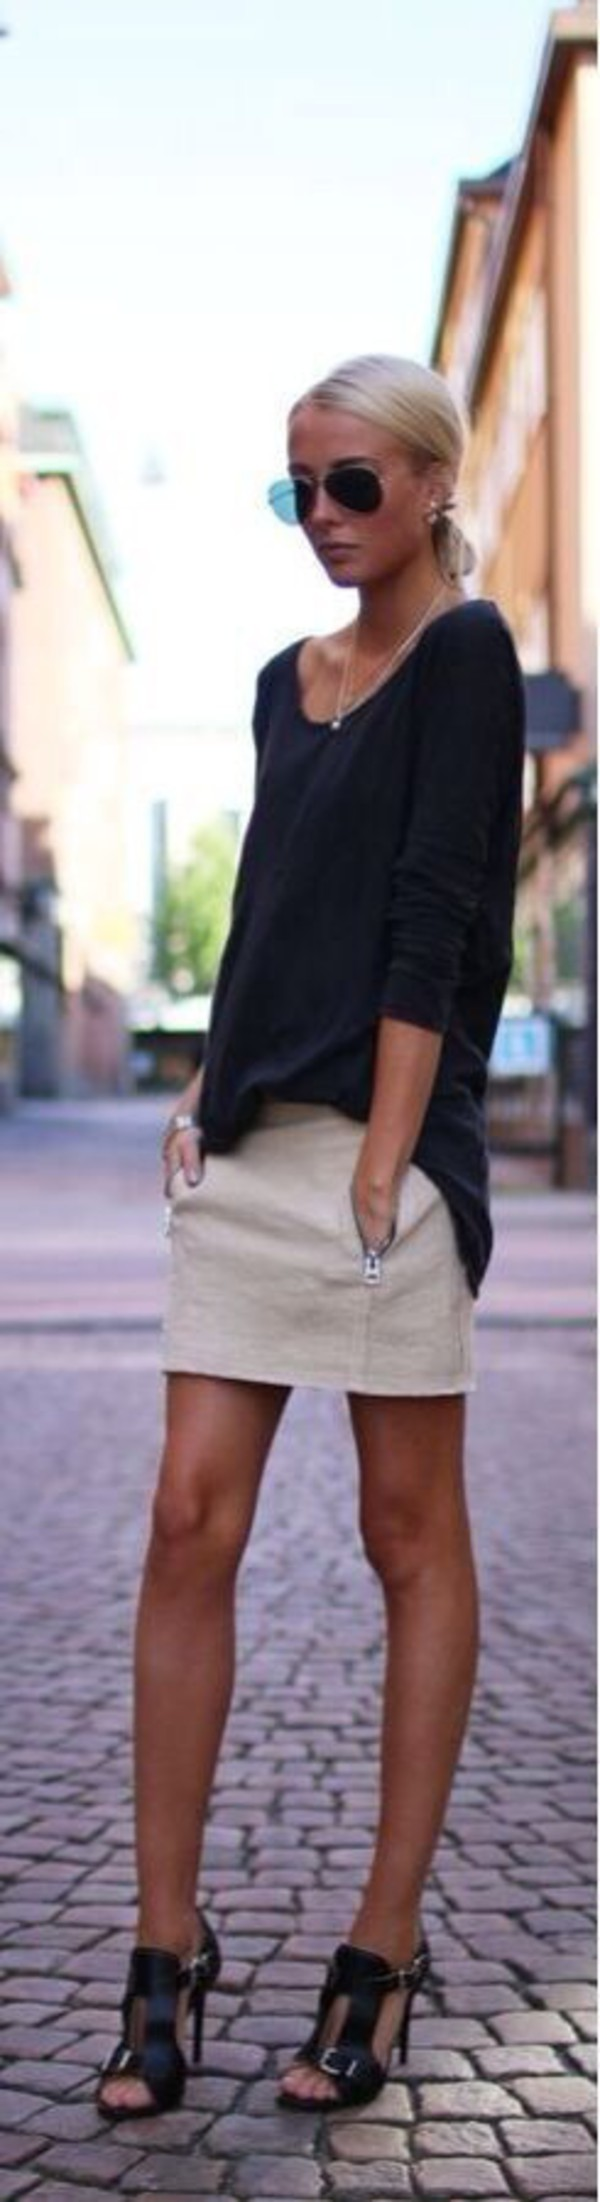 shoes skirt sweatshirt